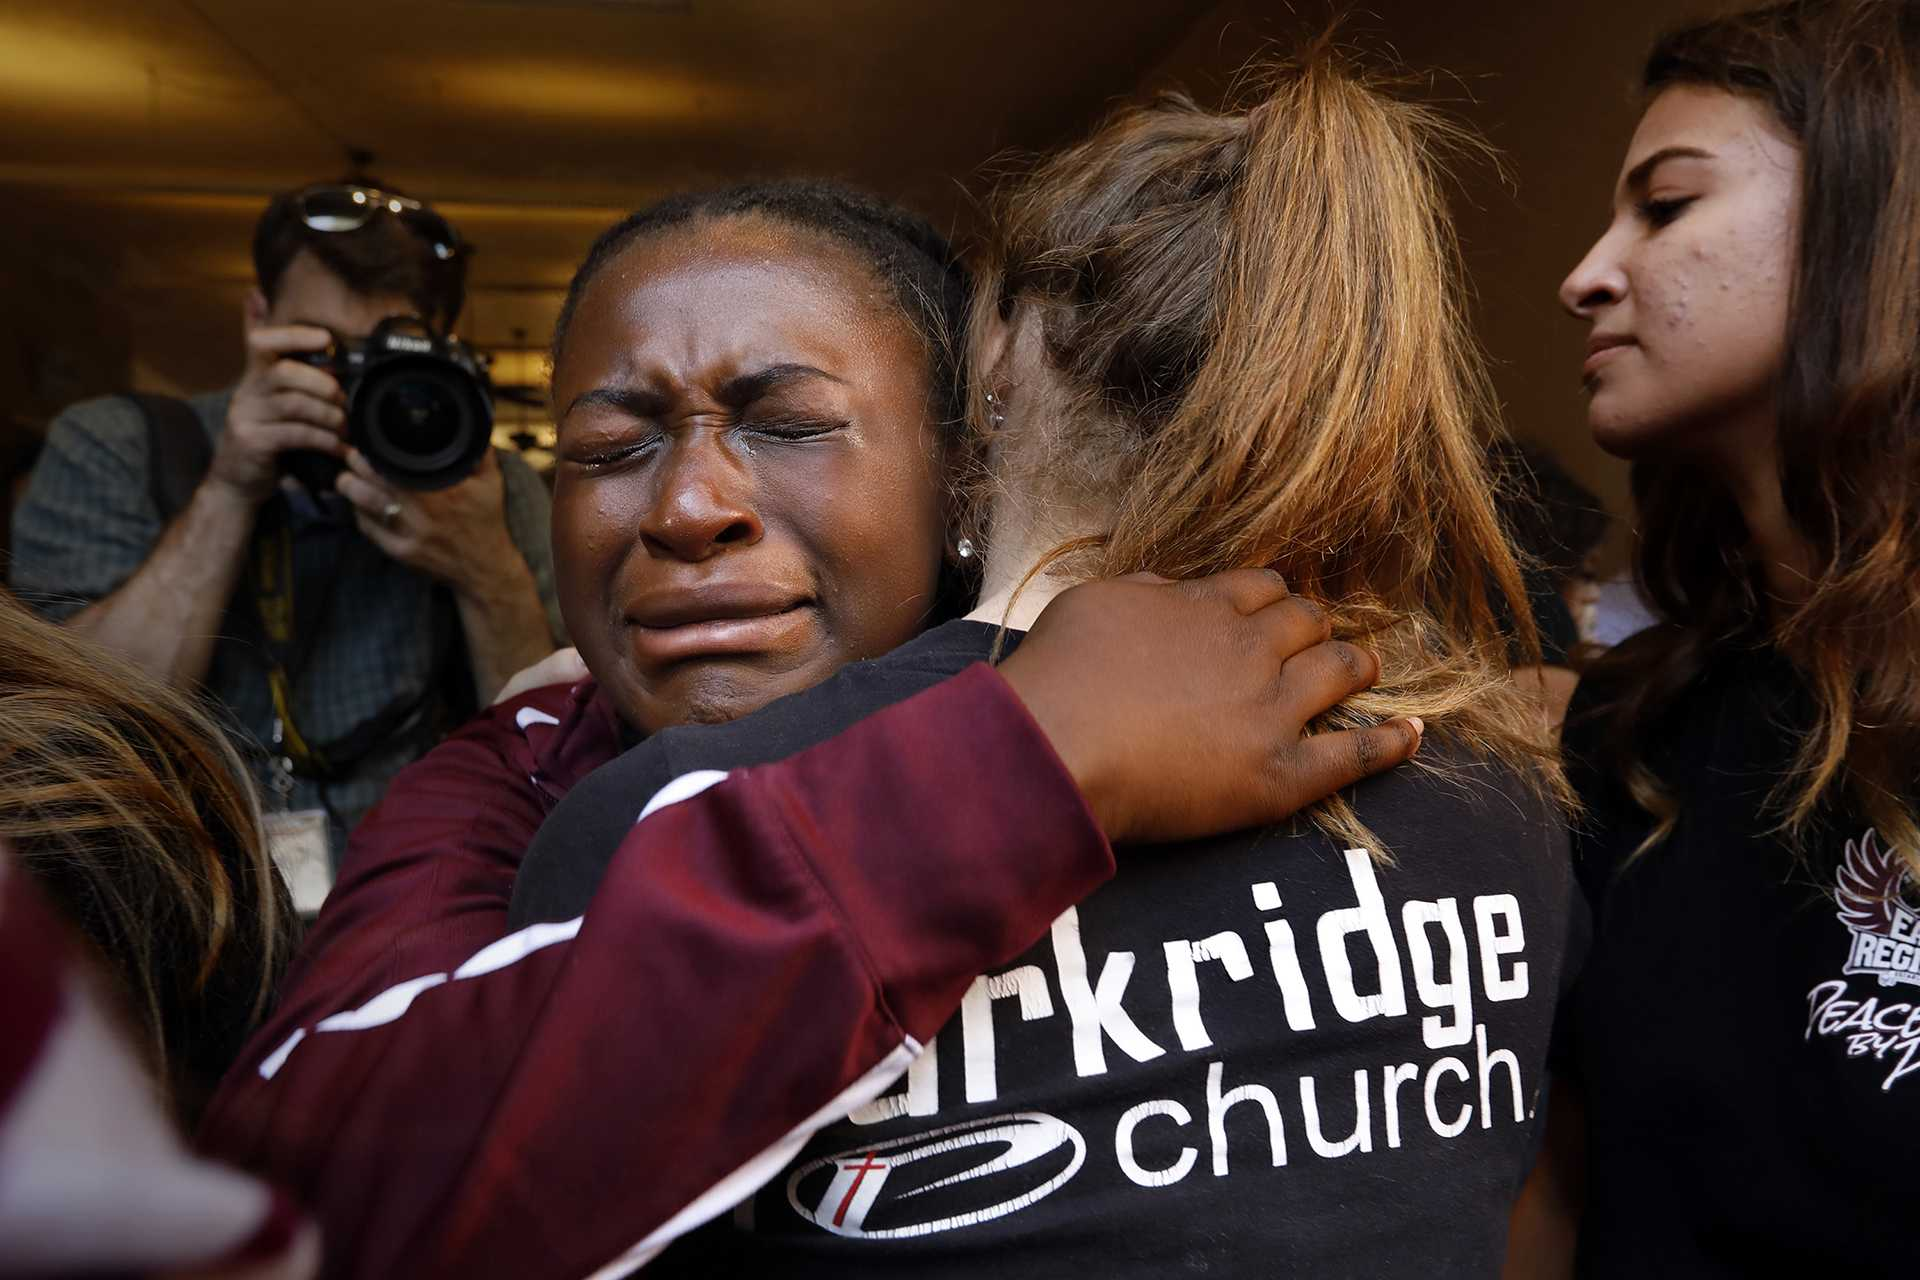 Marla Eveillard, 14, grieves with friends before the start of the community prayer vigil on Thursday, Feb. 15, 2018, one day after the deadly shooting at Marjory Stoneman Douglas High School in Parkland, Fla. that left 17 dead and 14 injured. (Carolyn Cole/Los Angeles Times/TNS)